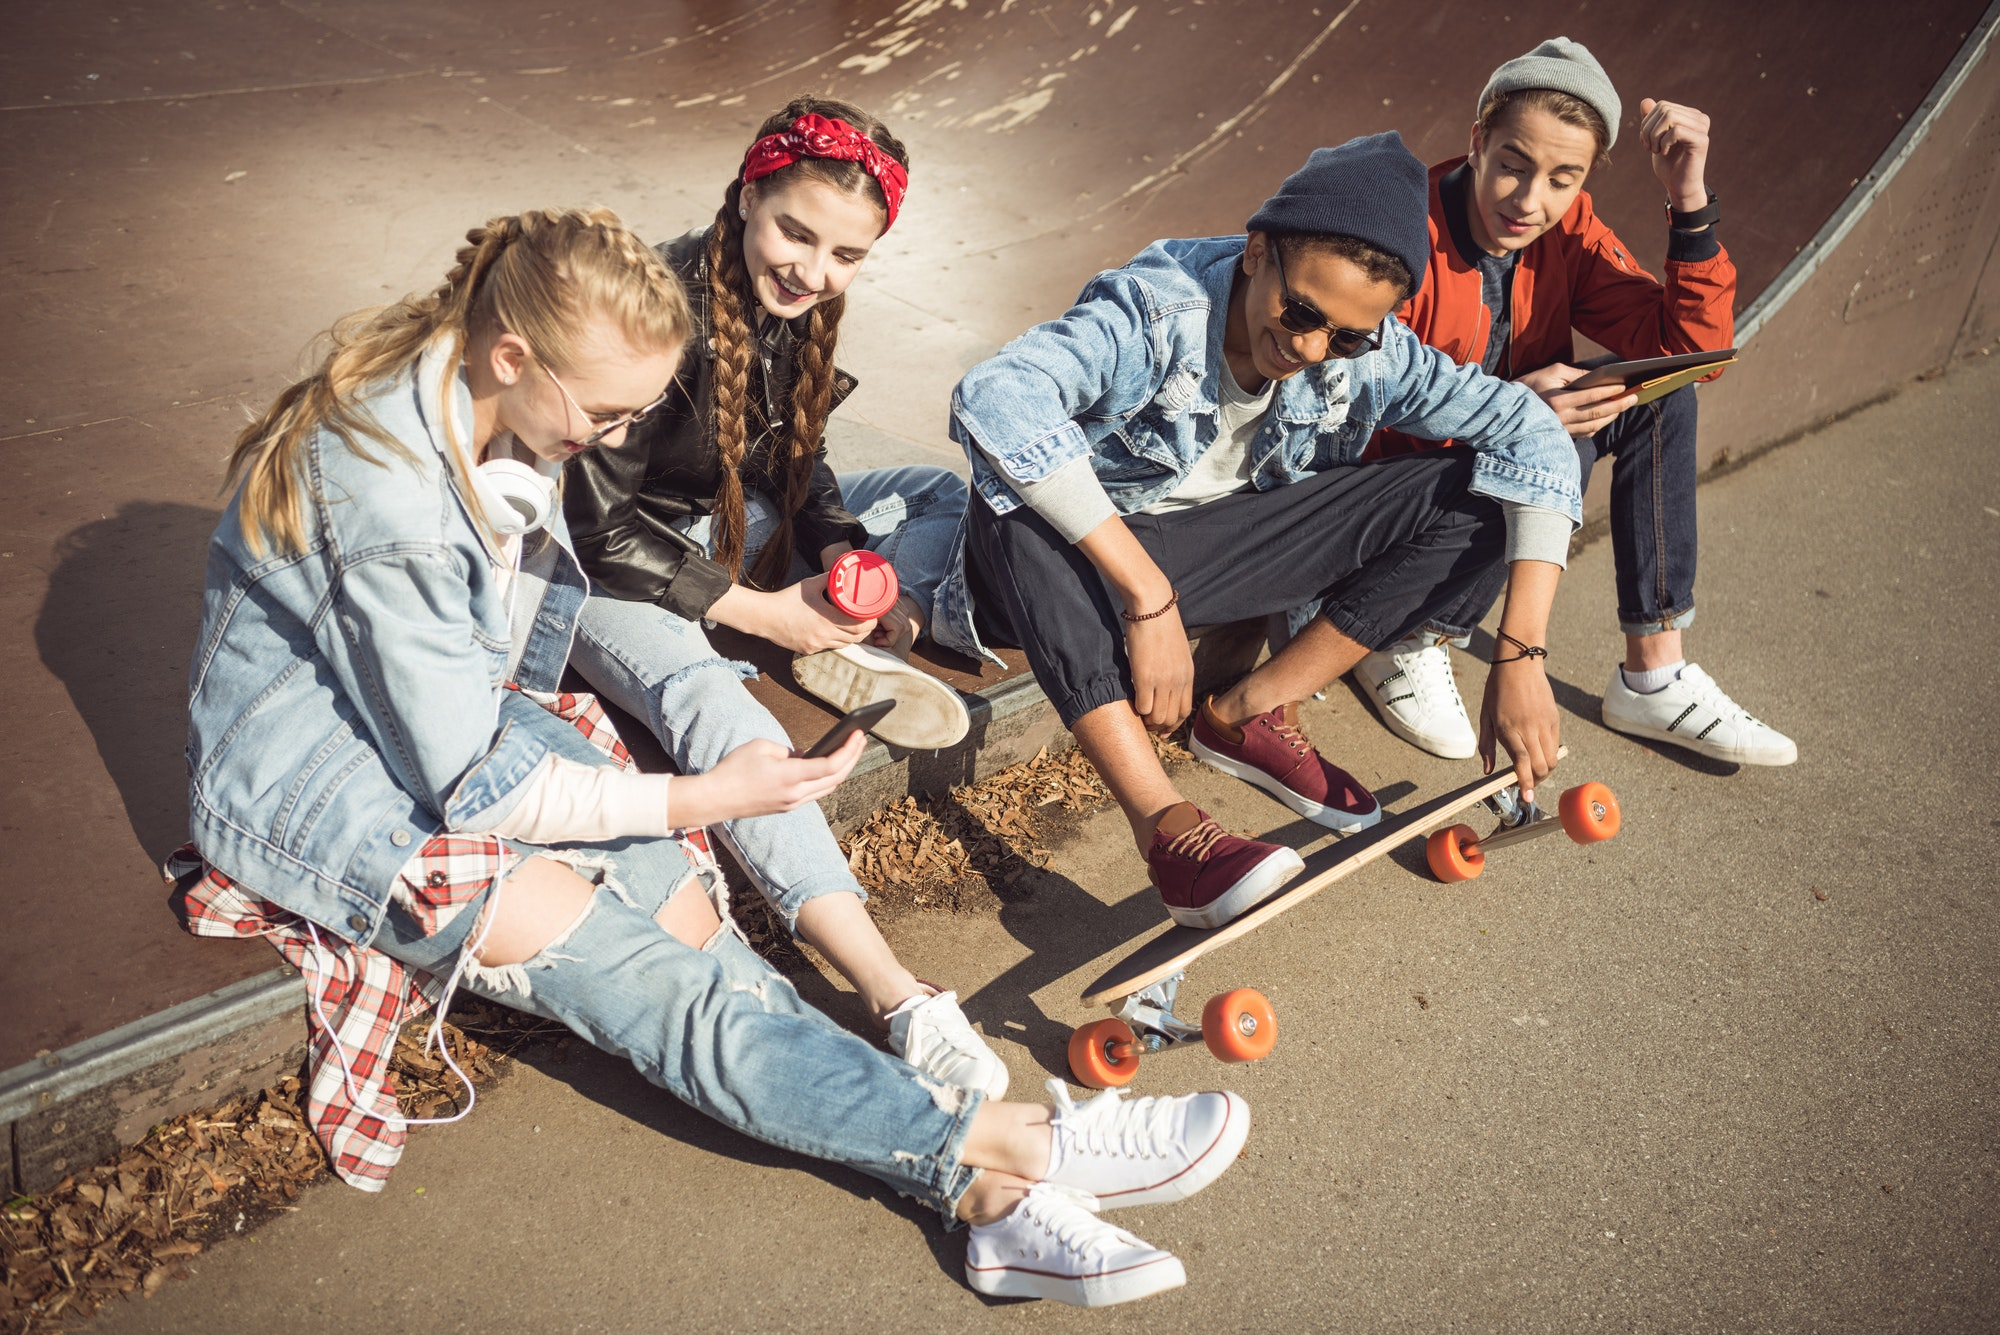 Teenagers group sitting sitting together and using digital devices at skateboard park